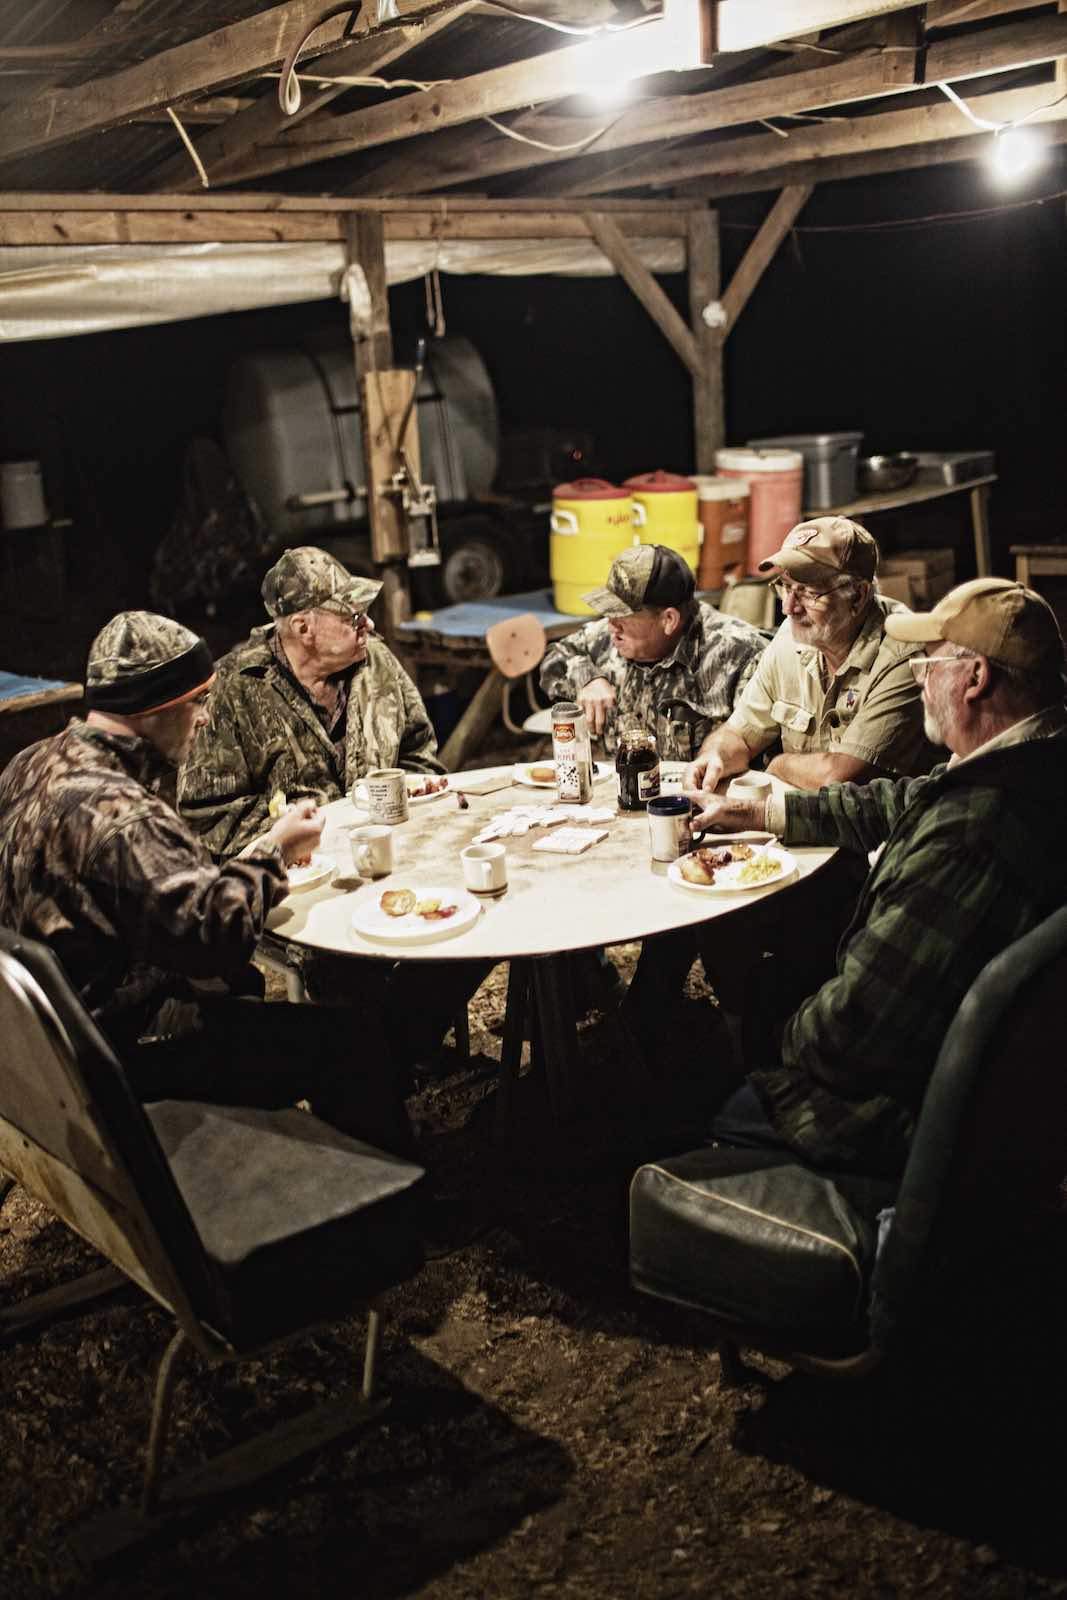 Jody Horton Photography - Hunters eating at a round table in the dark, early hours of the morning.